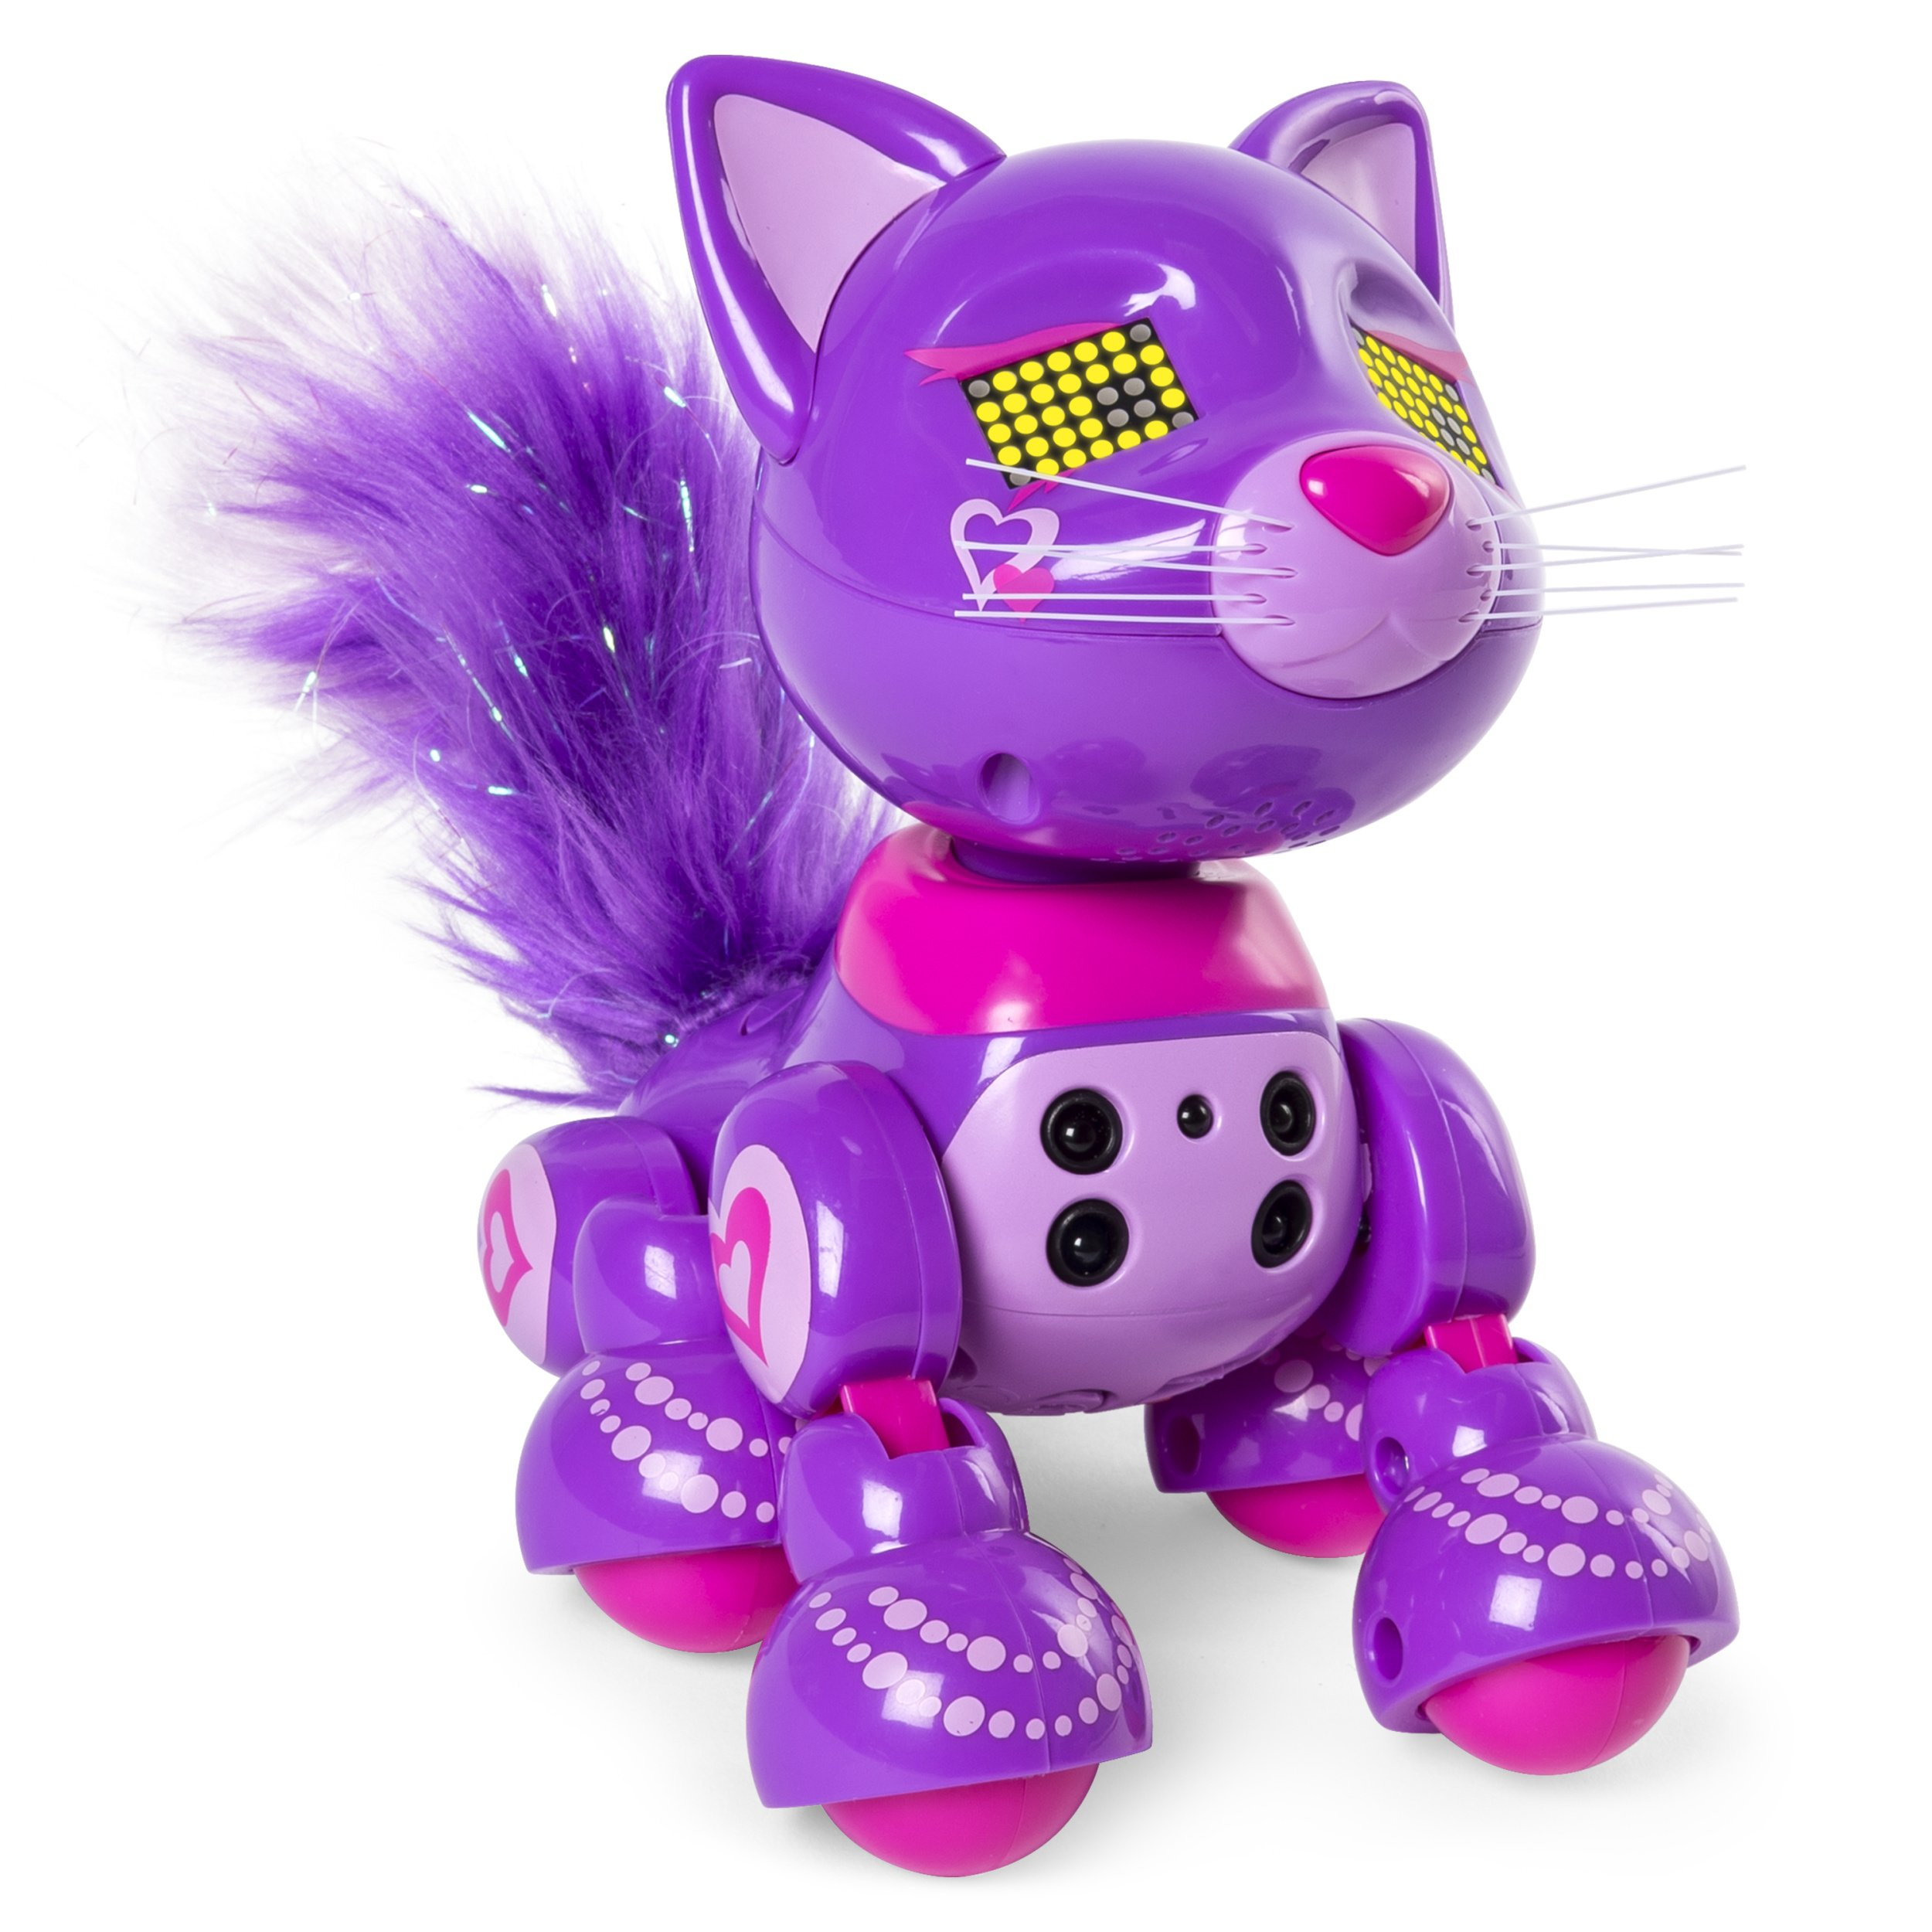 Zoomer Meowzies, Posh, Interactive Kitten with Lights, Sounds and Sensors